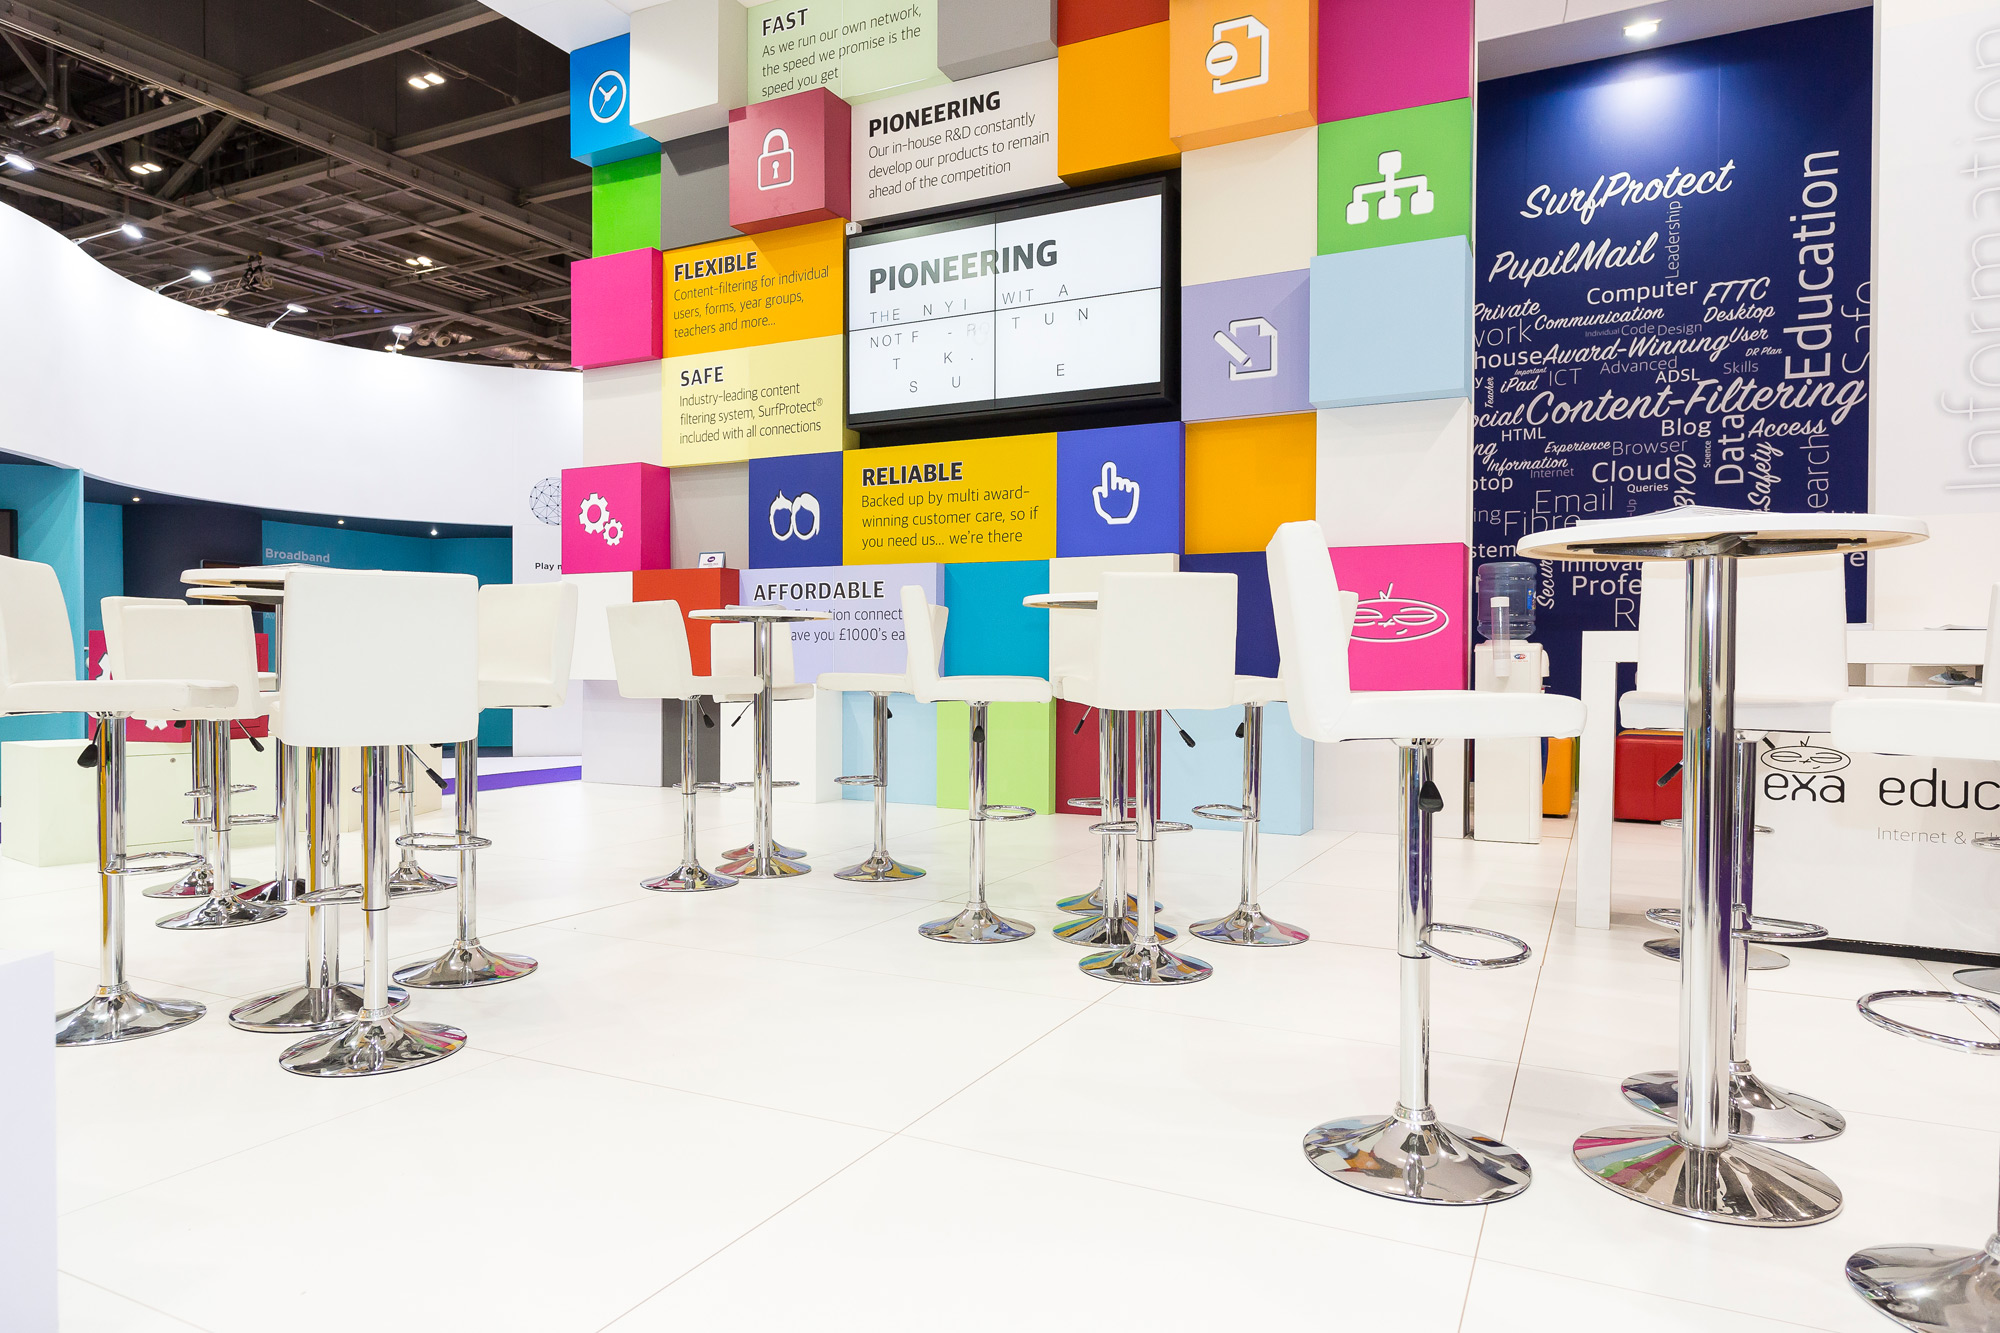 Exhibition Design for Exa Education at Bett - 2BP Design and Build